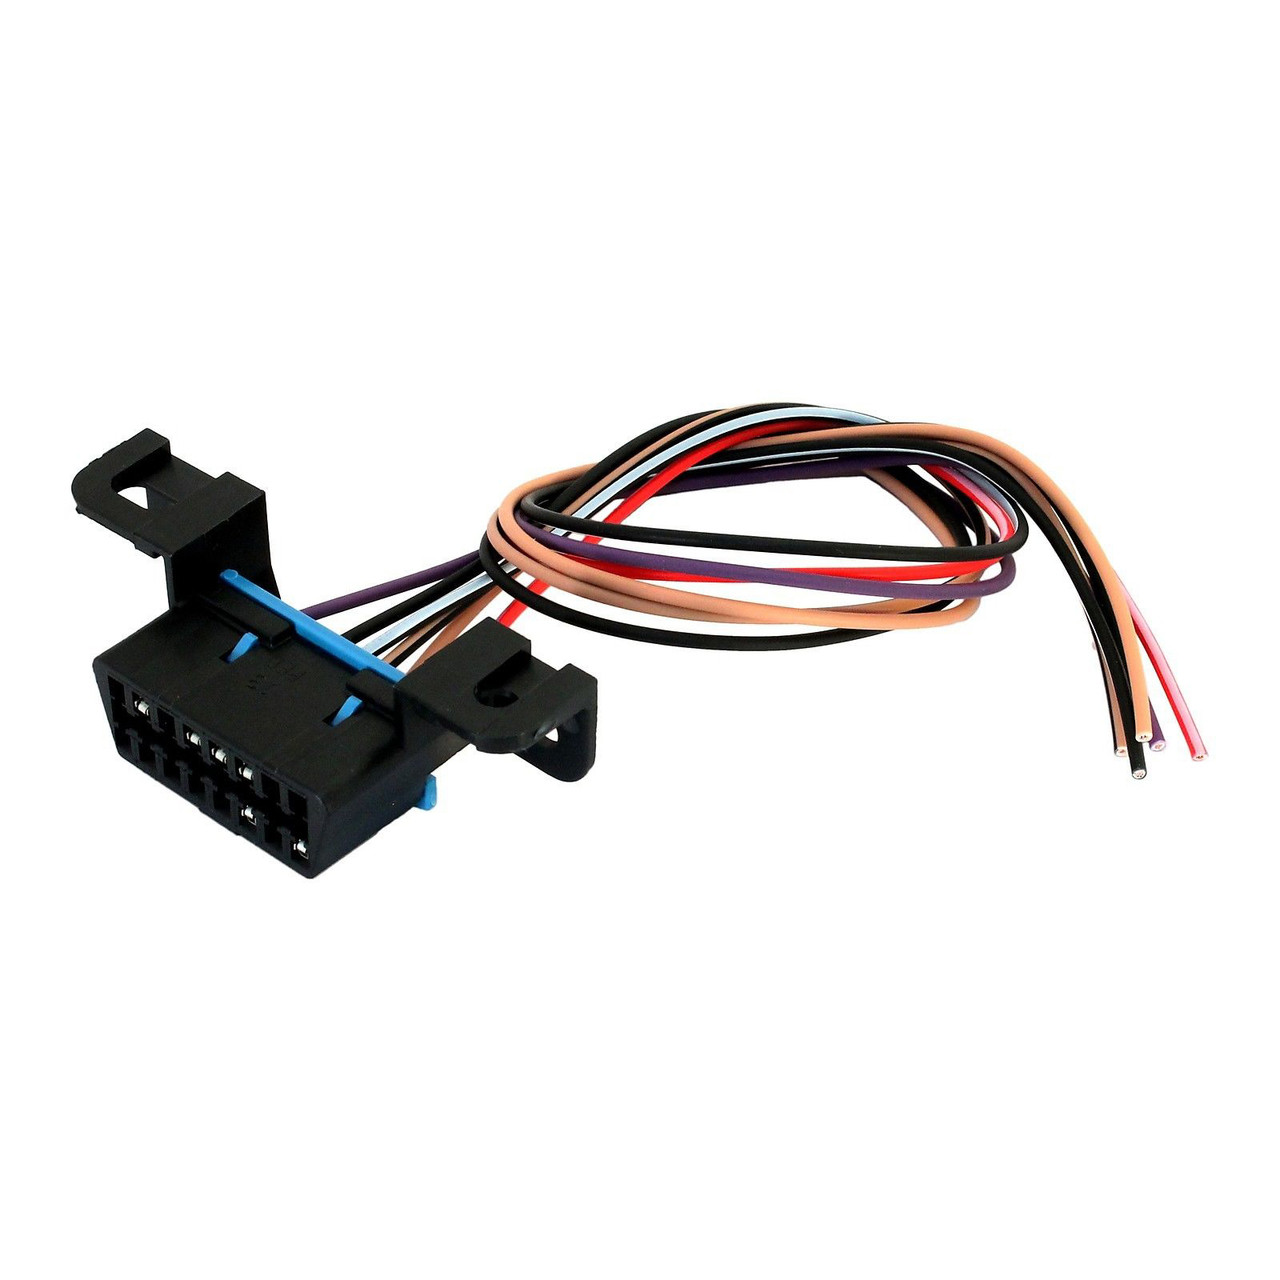 small resolution of obdii obd2 j1962 class 2 can bus wiring harness connector pigtailobd2 wiring harness 3